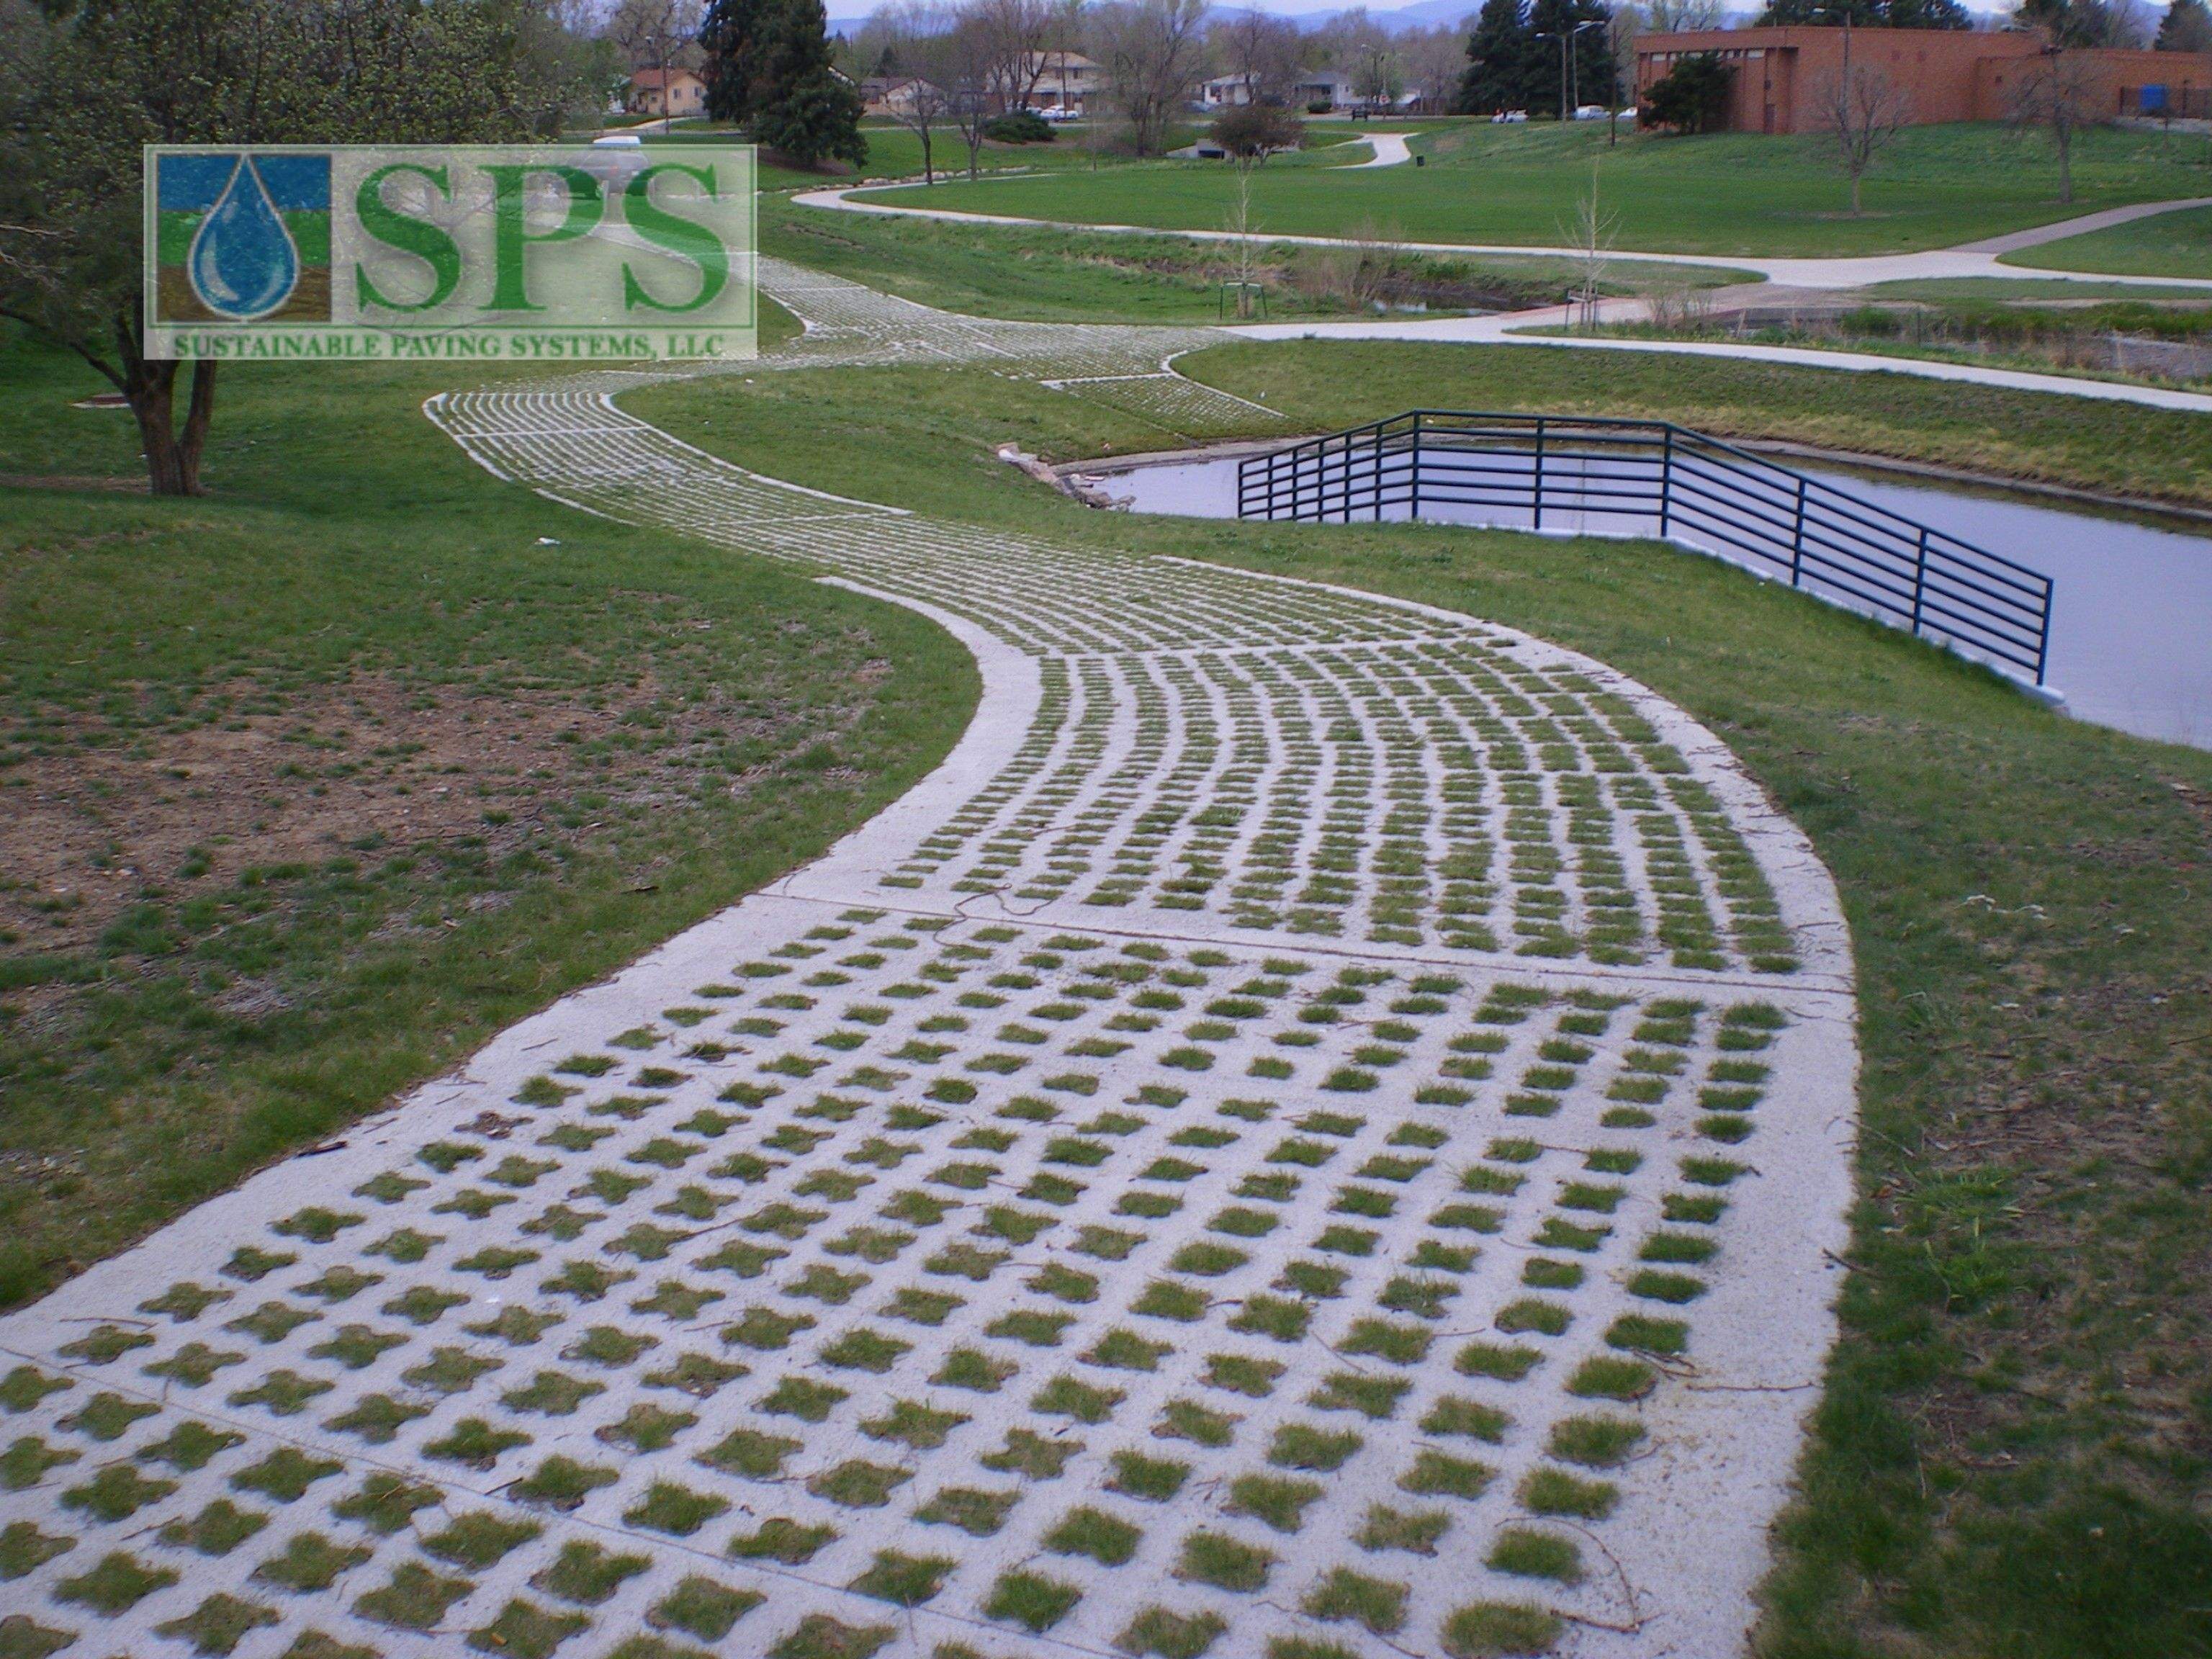 Grasscrete was installed here to provide a pervious concrete system that will allow water to pass freely through while maintaining a structural integrity that is suitable to support the weight of required maintenance vehicles.